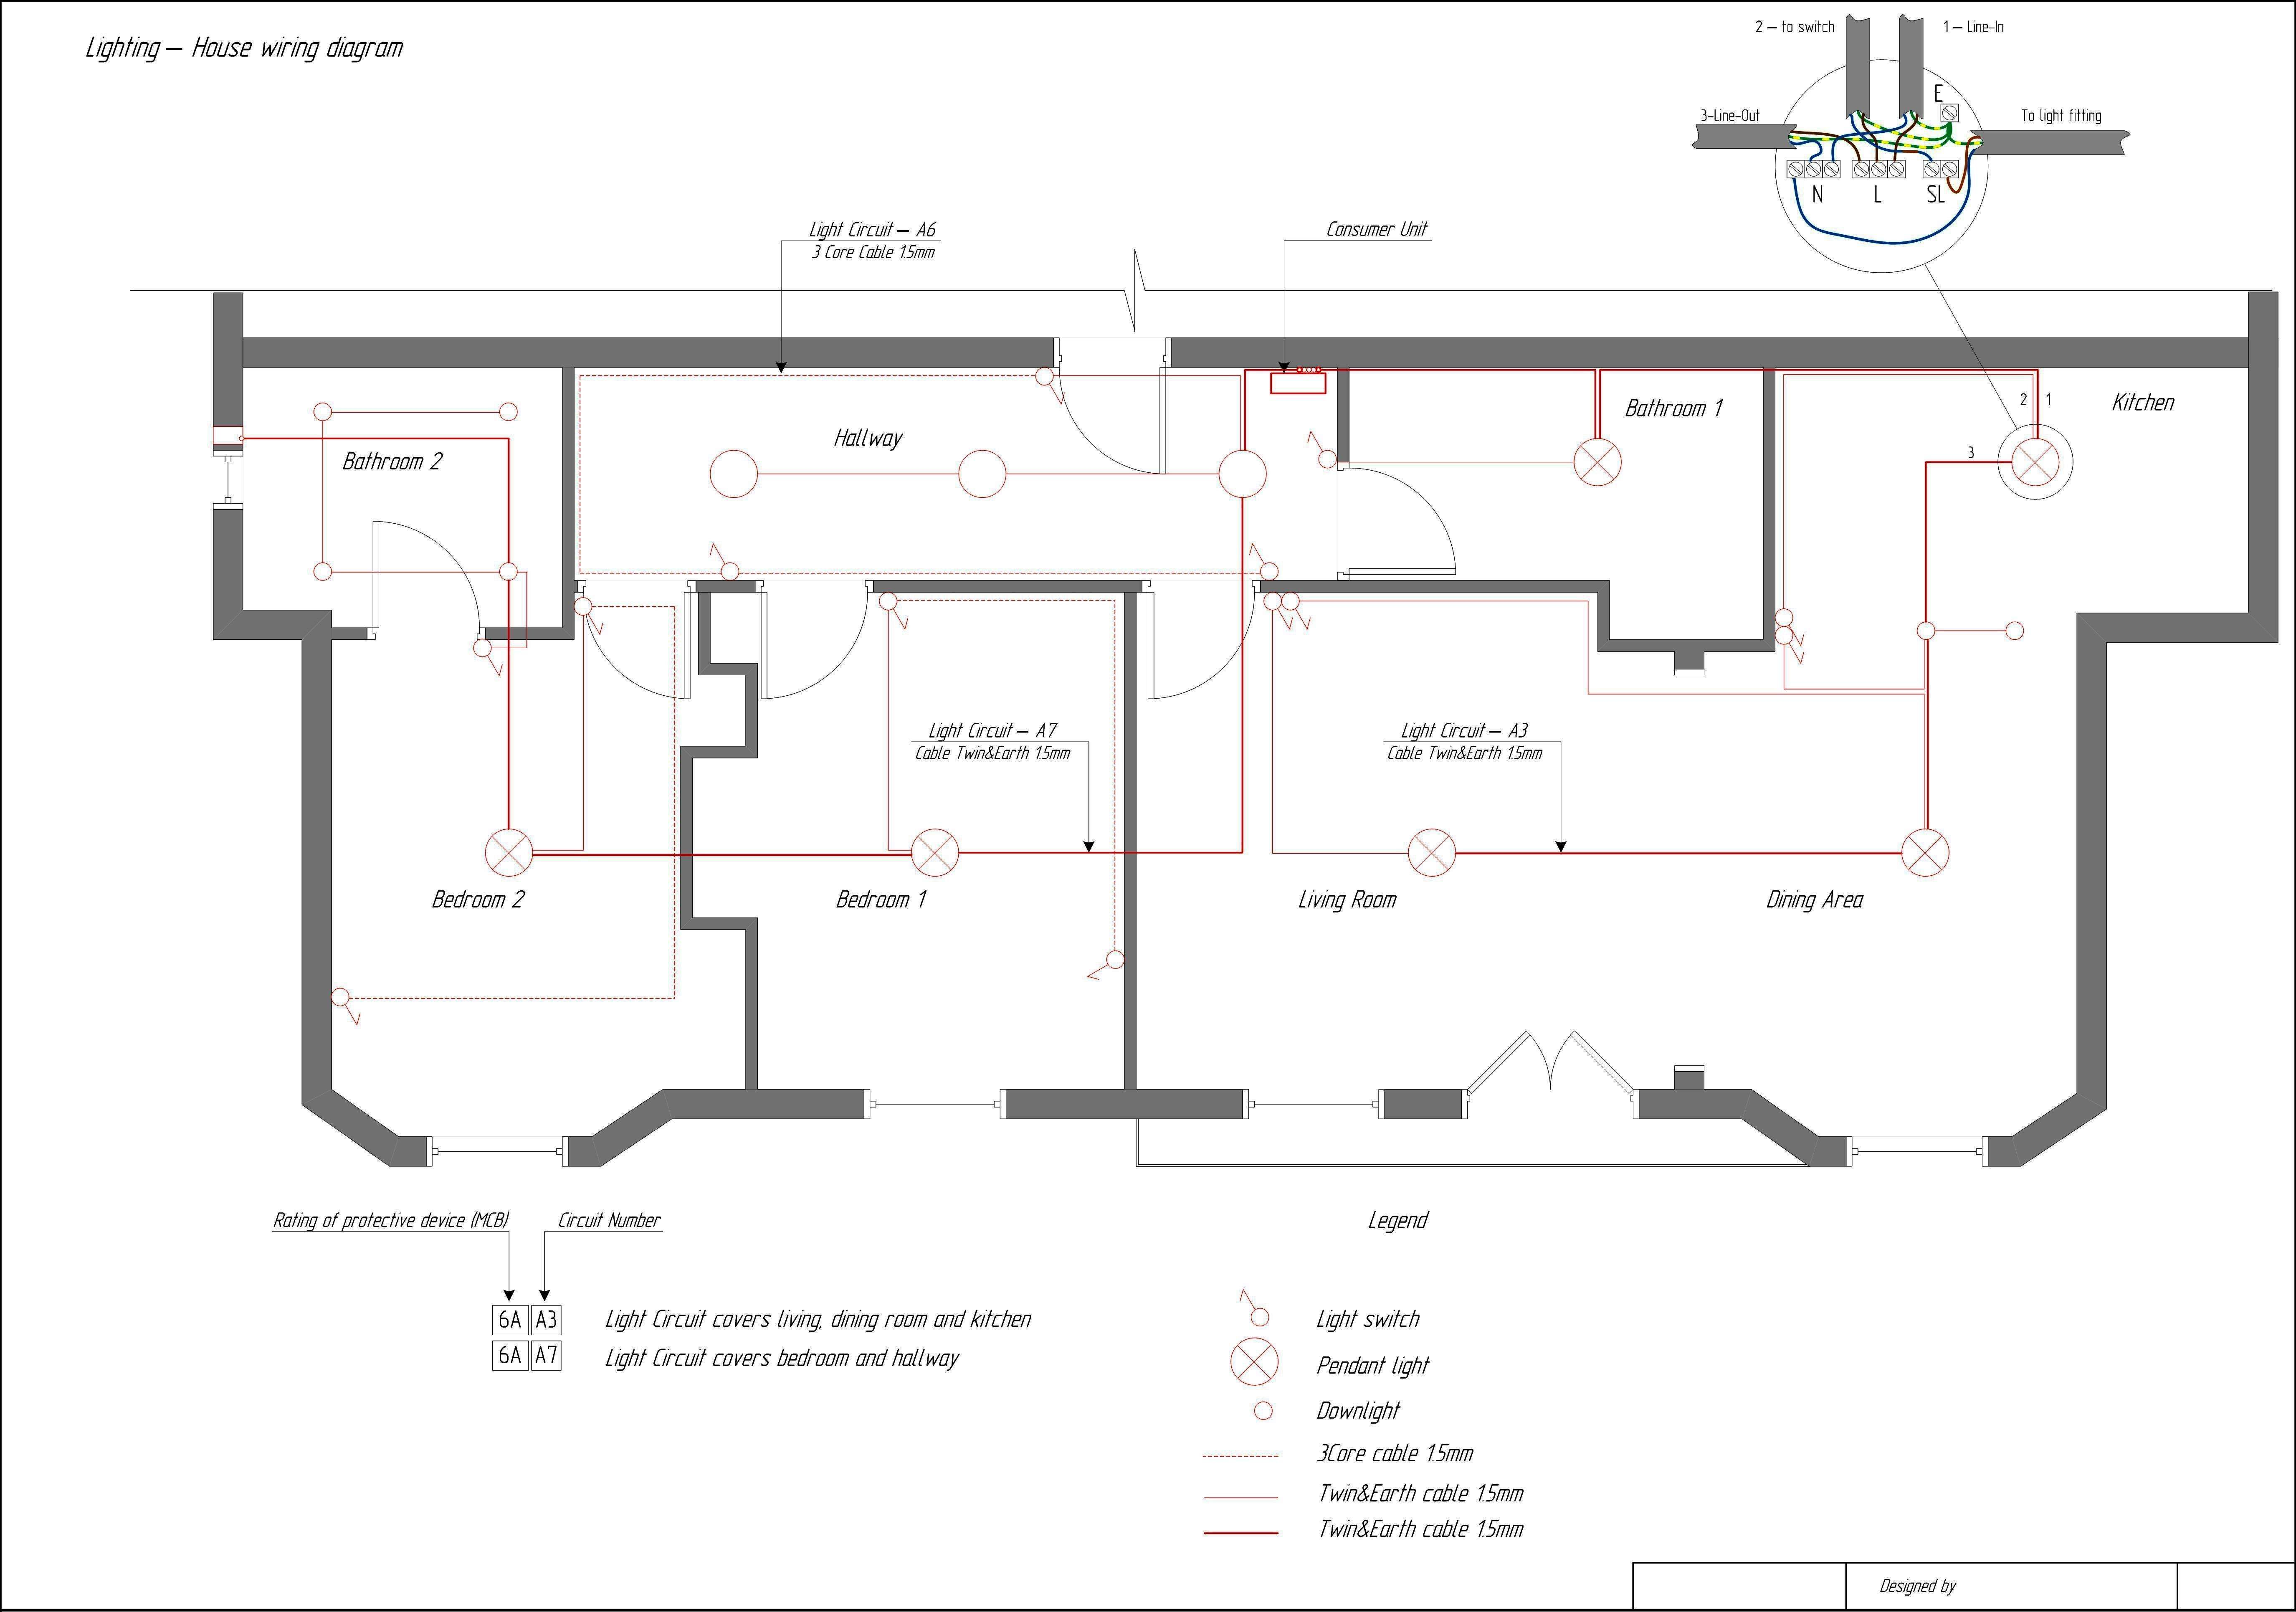 Electrical House Wiring Diagram Software from i.pinimg.com